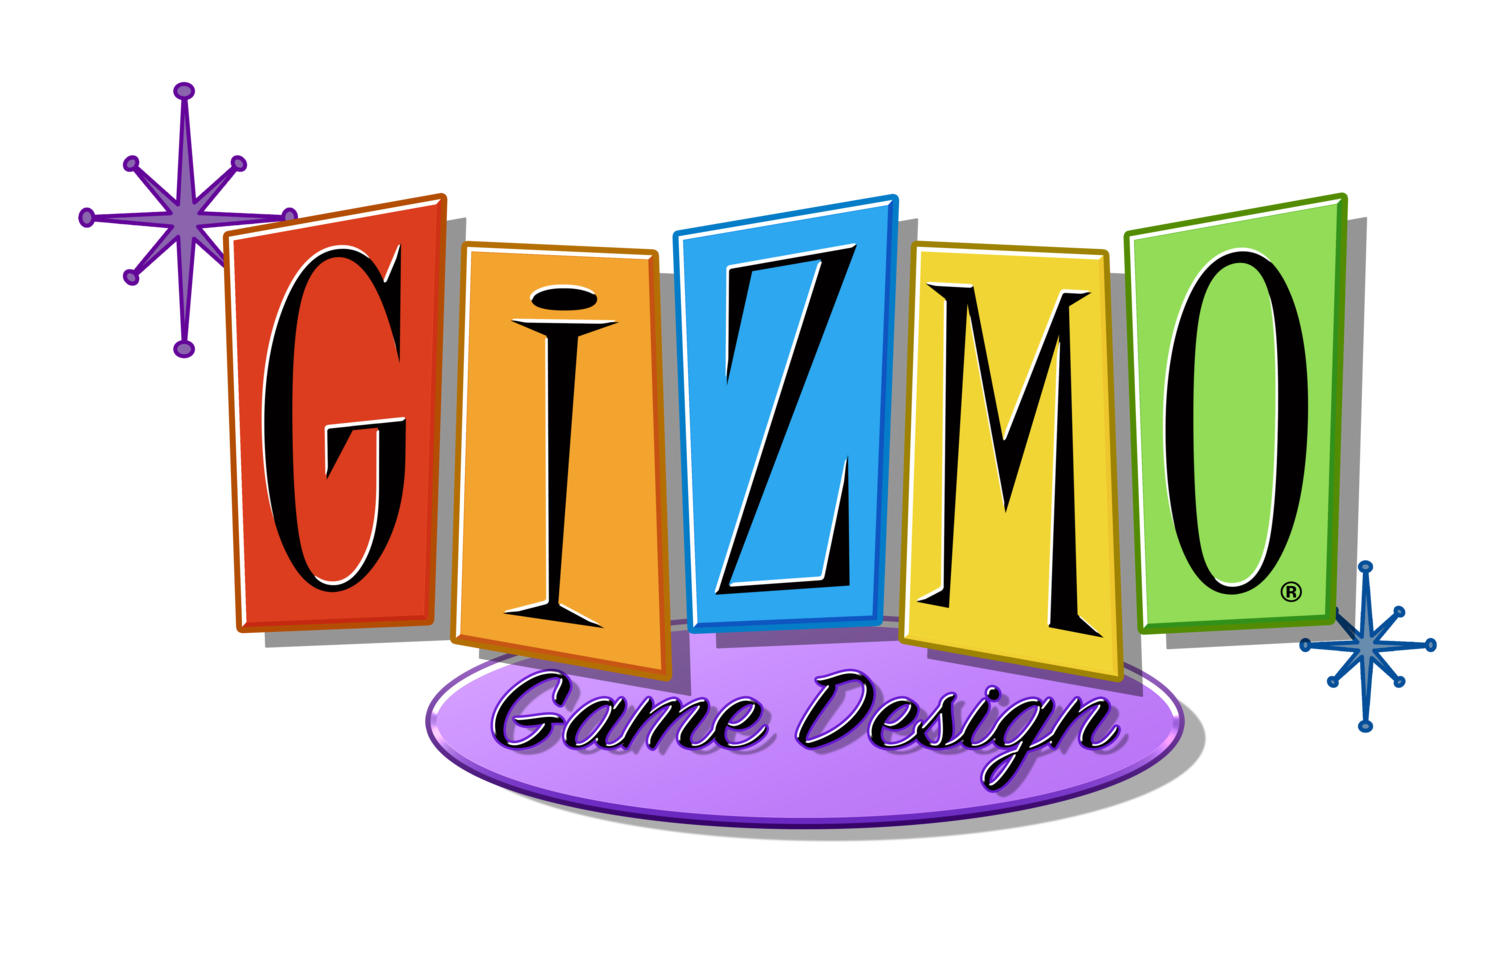 Gizmo Game Design